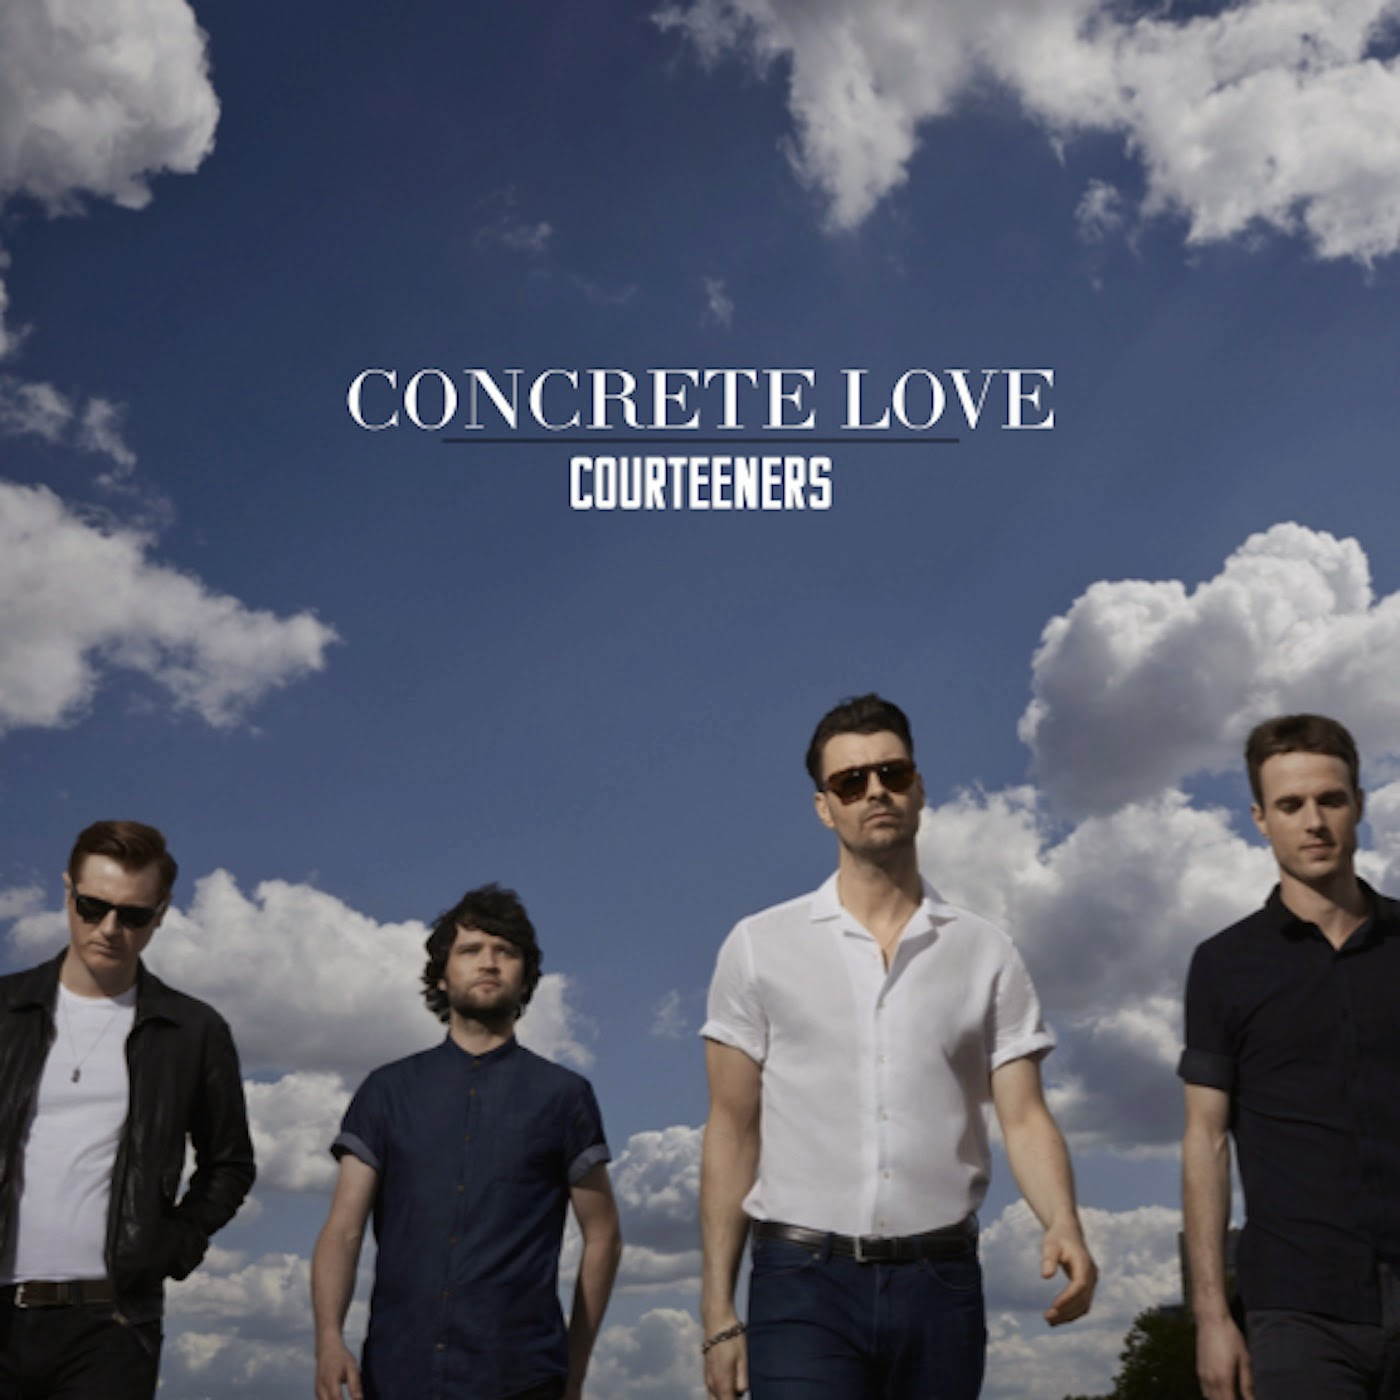 Courteeners fourth album Concrete Love